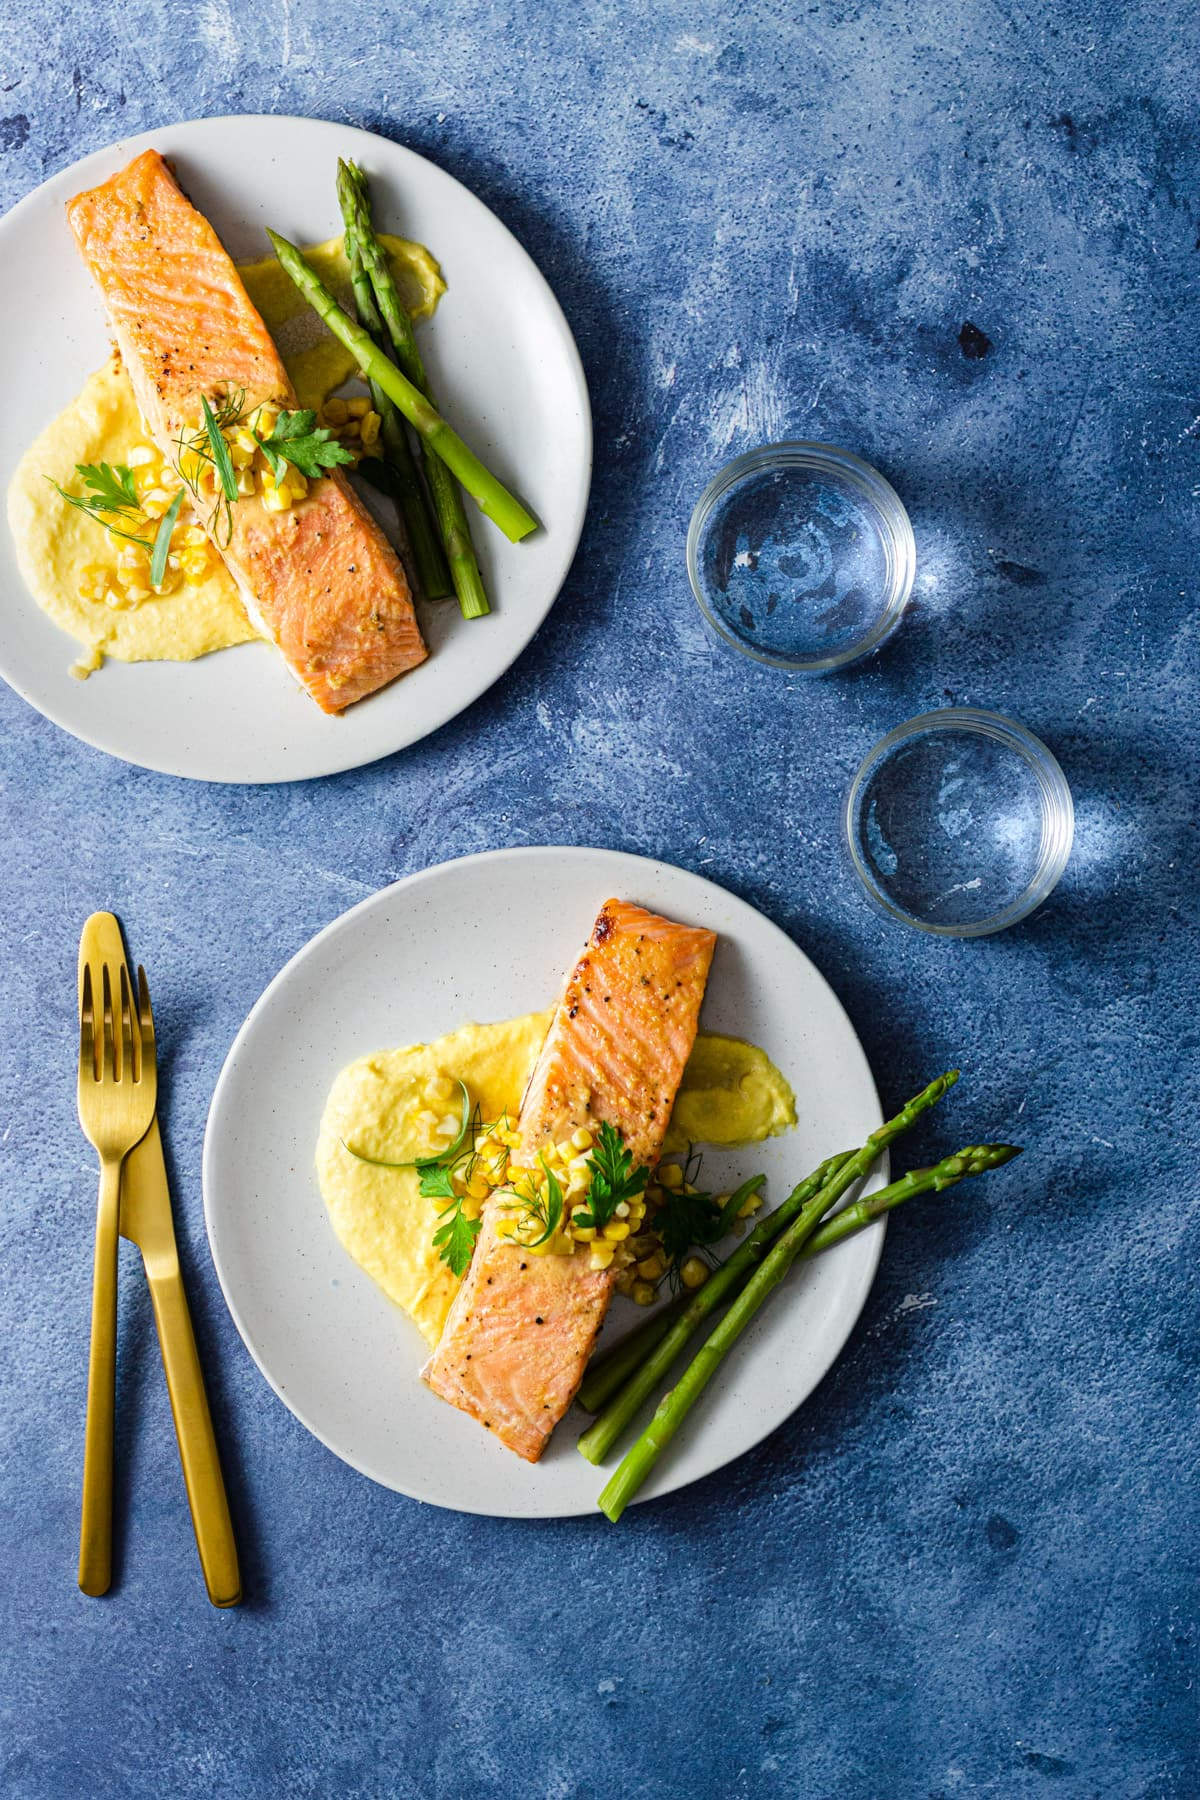 Two plates of Miso Butter Salmon over Corn Puree next to asparagus on light grey plates with a vibrant blue background next to water glasses and utensils.